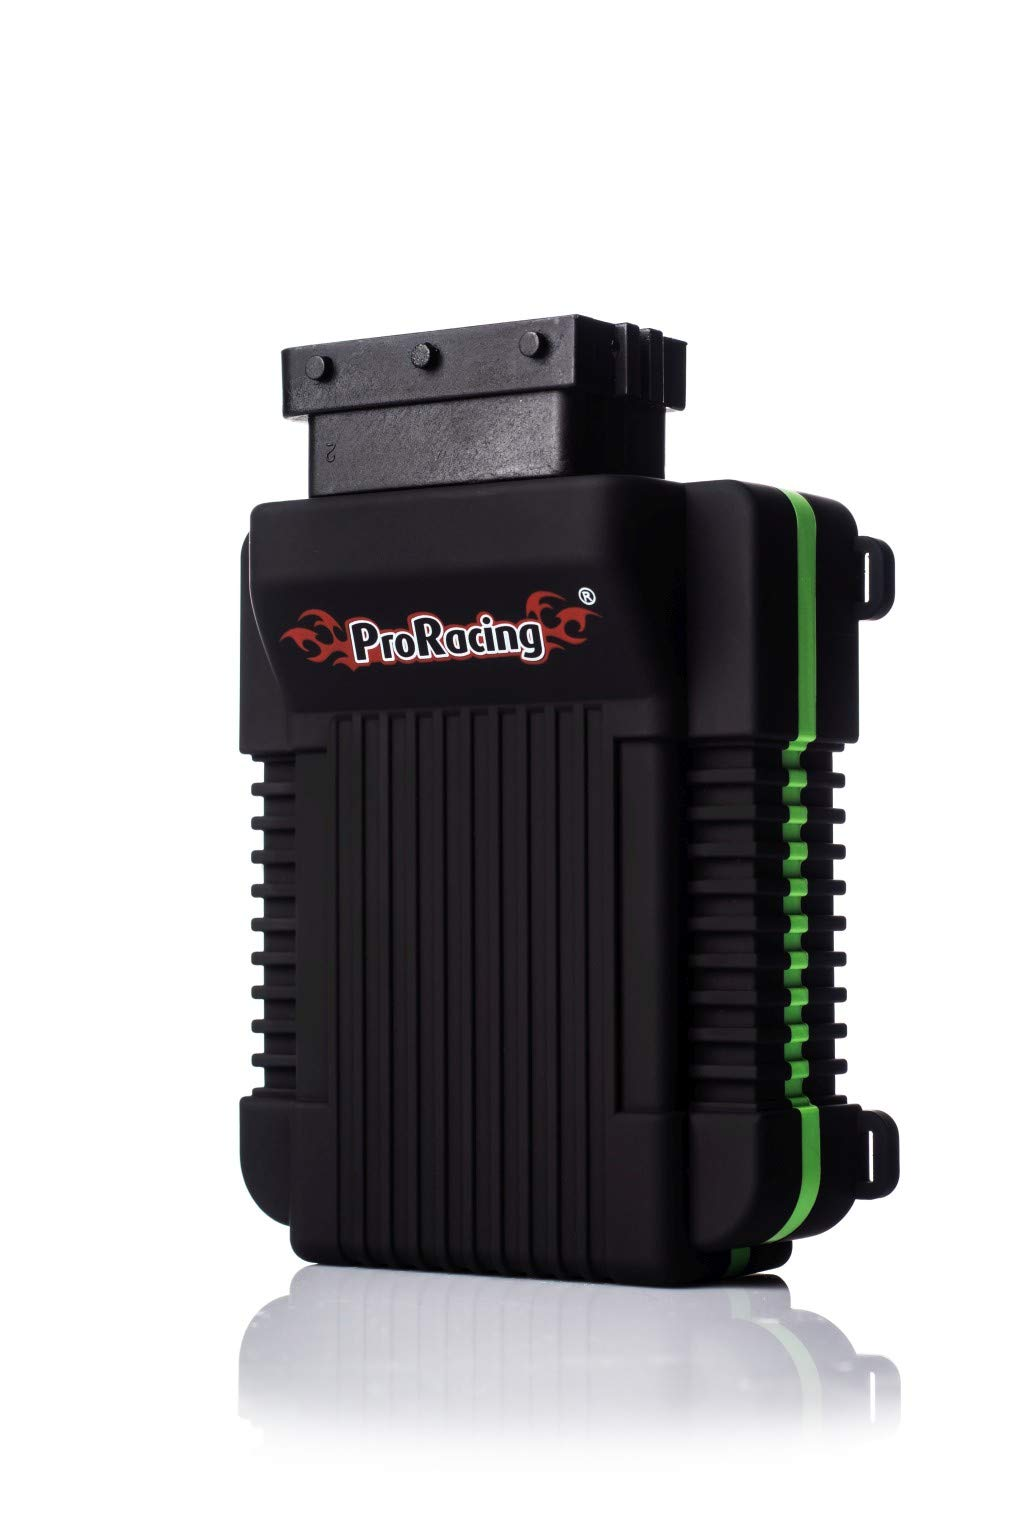 ProRacing X 33063 Chip Tuning UNICATE für M.B GL350 X164 3.0 CDI 155 KW / 211 PS / 540 NM von ProRacing X